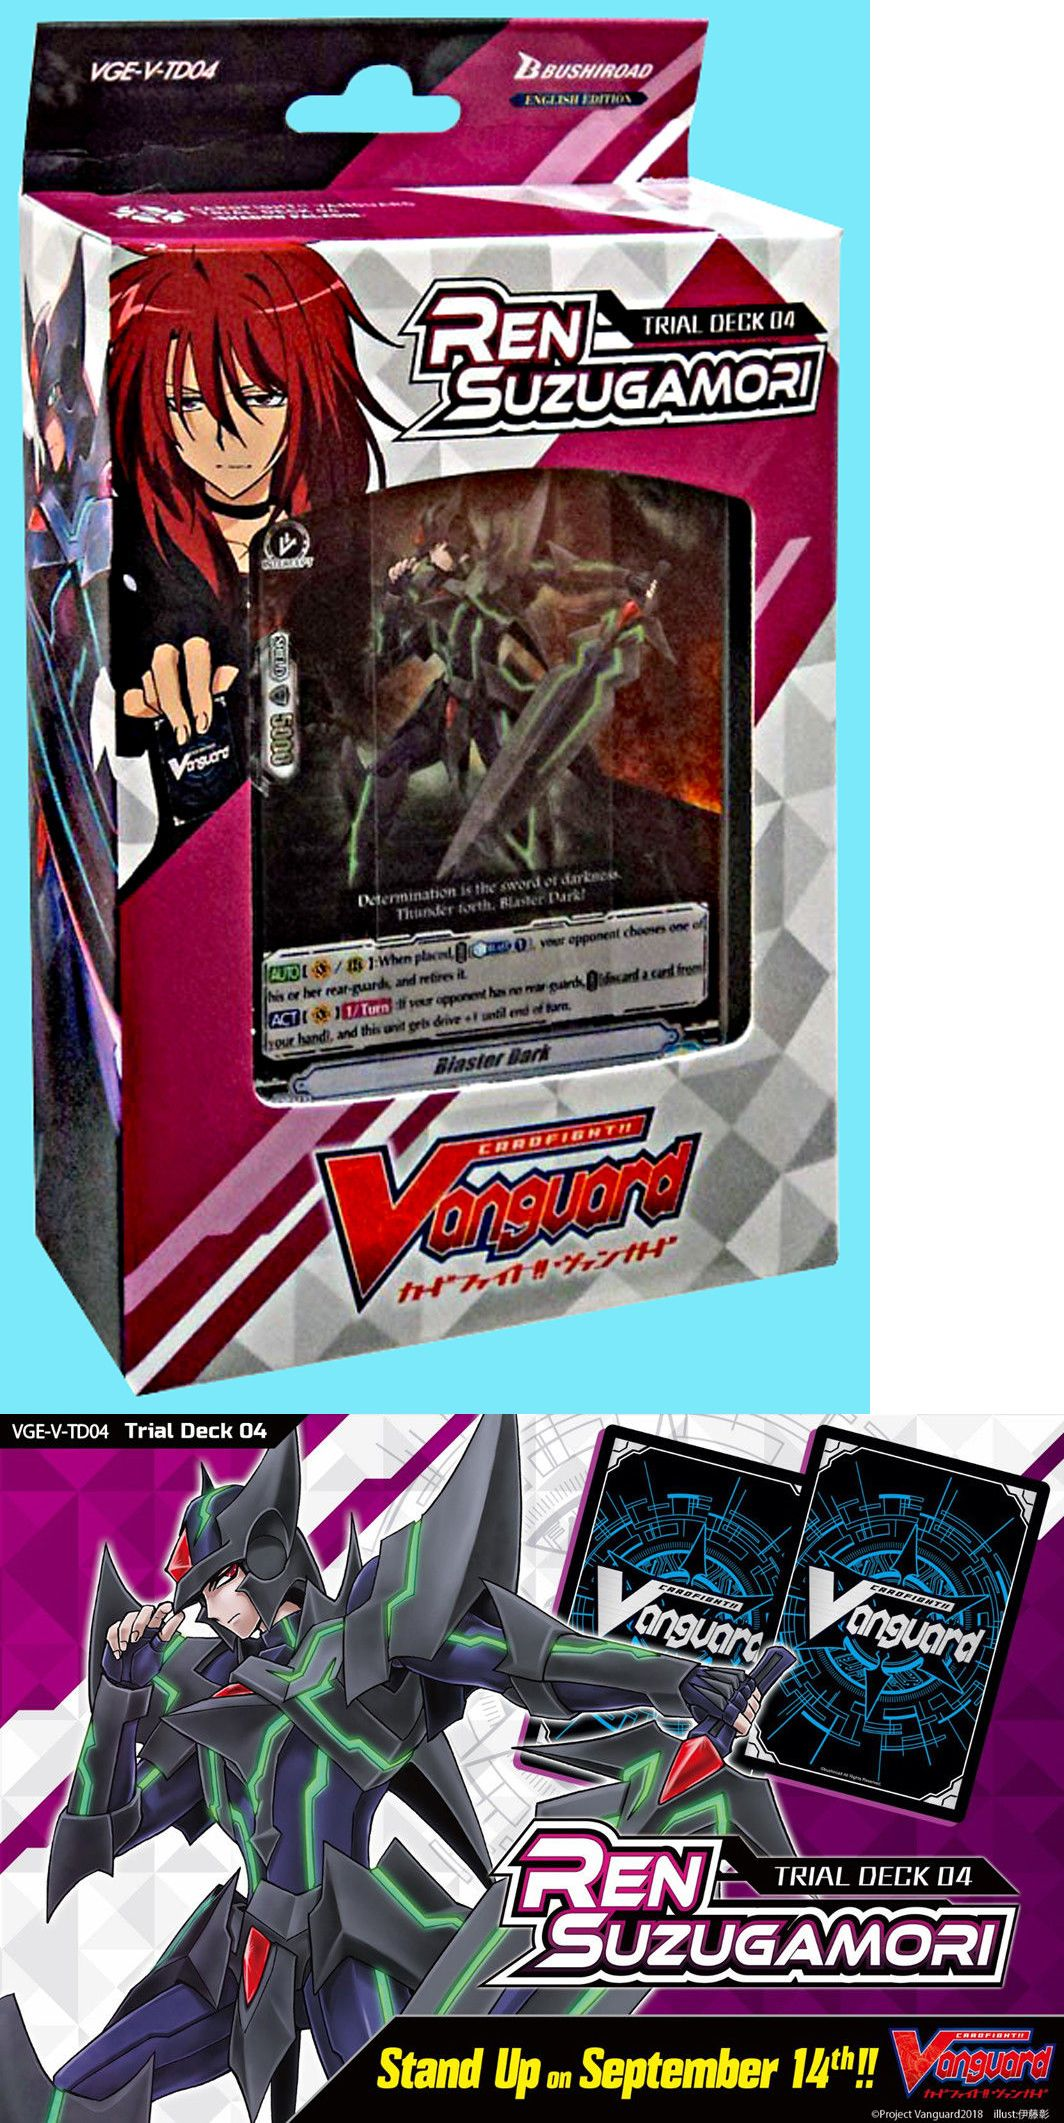 Other CCG Items 2535: Cardfight Vanguard Vge-V-Td04 Ren Suzugamori English  Trial Deck Shadow Paladin -> BUY IT NOW ONLY: $17.39 on #eBay #other #items  ...